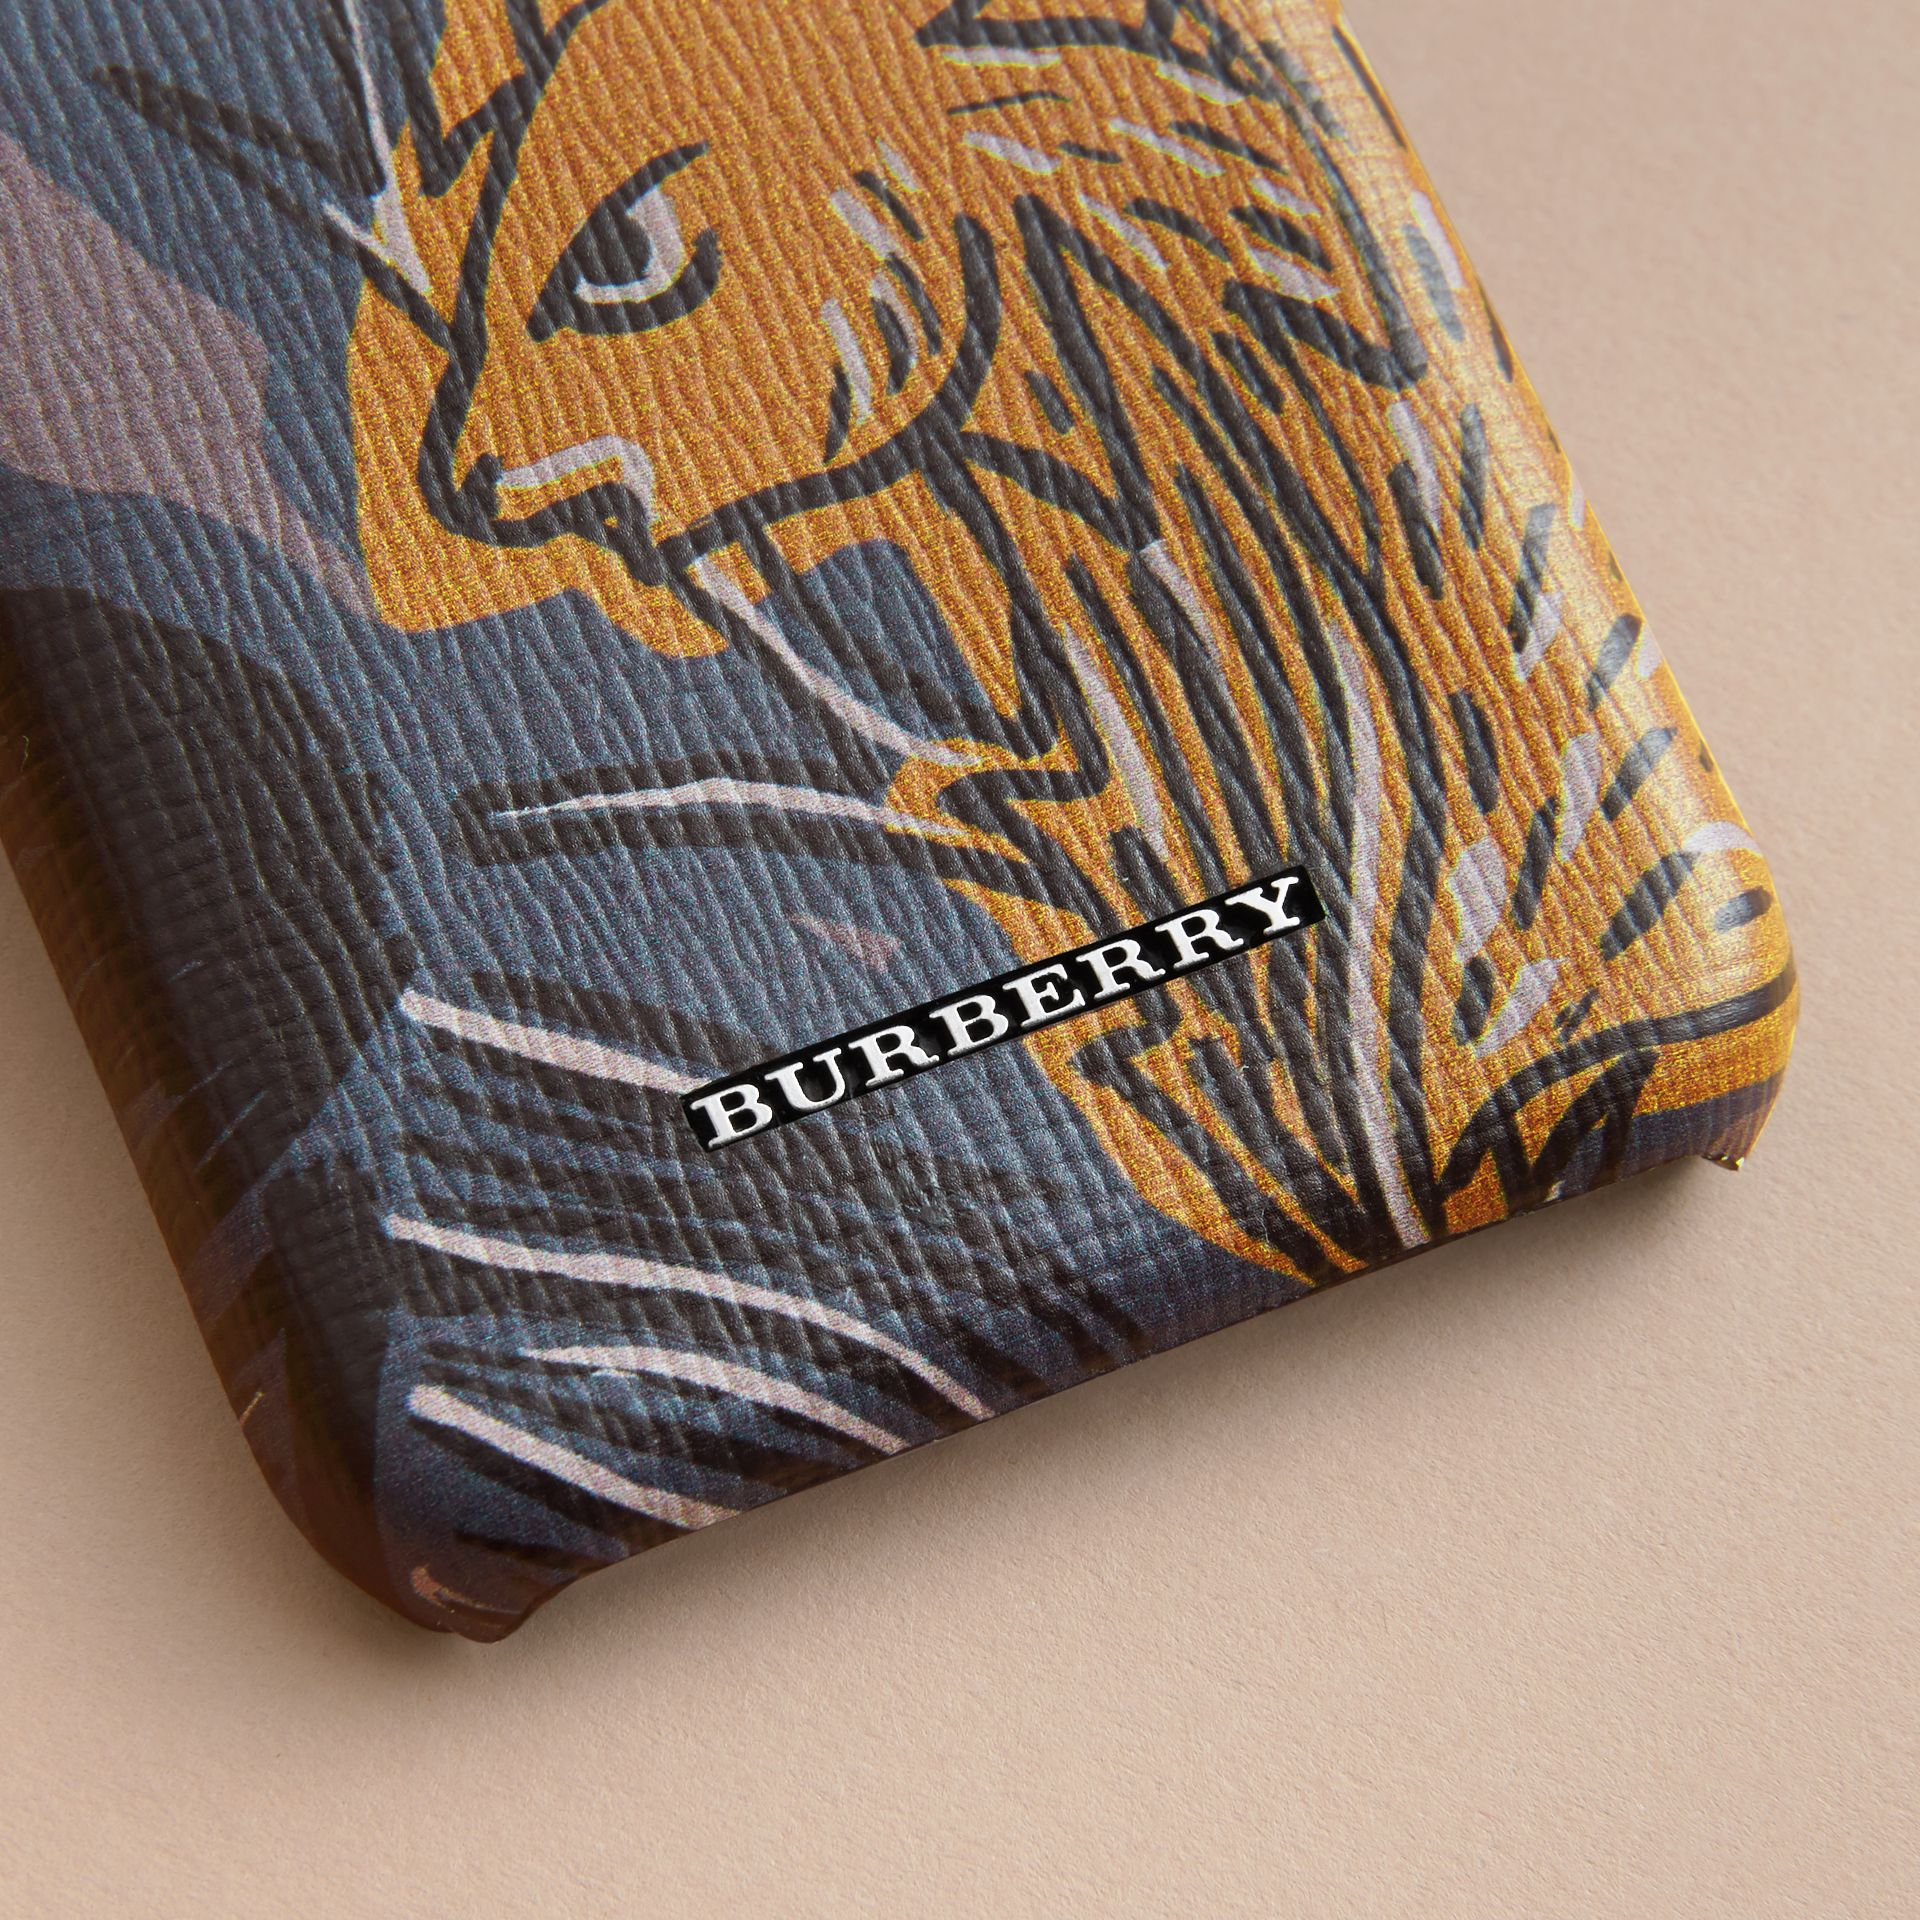 Beasts Print London Leather iPhone 7 Case in Navy Grey - Men | Burberry United Kingdom - gallery image 1